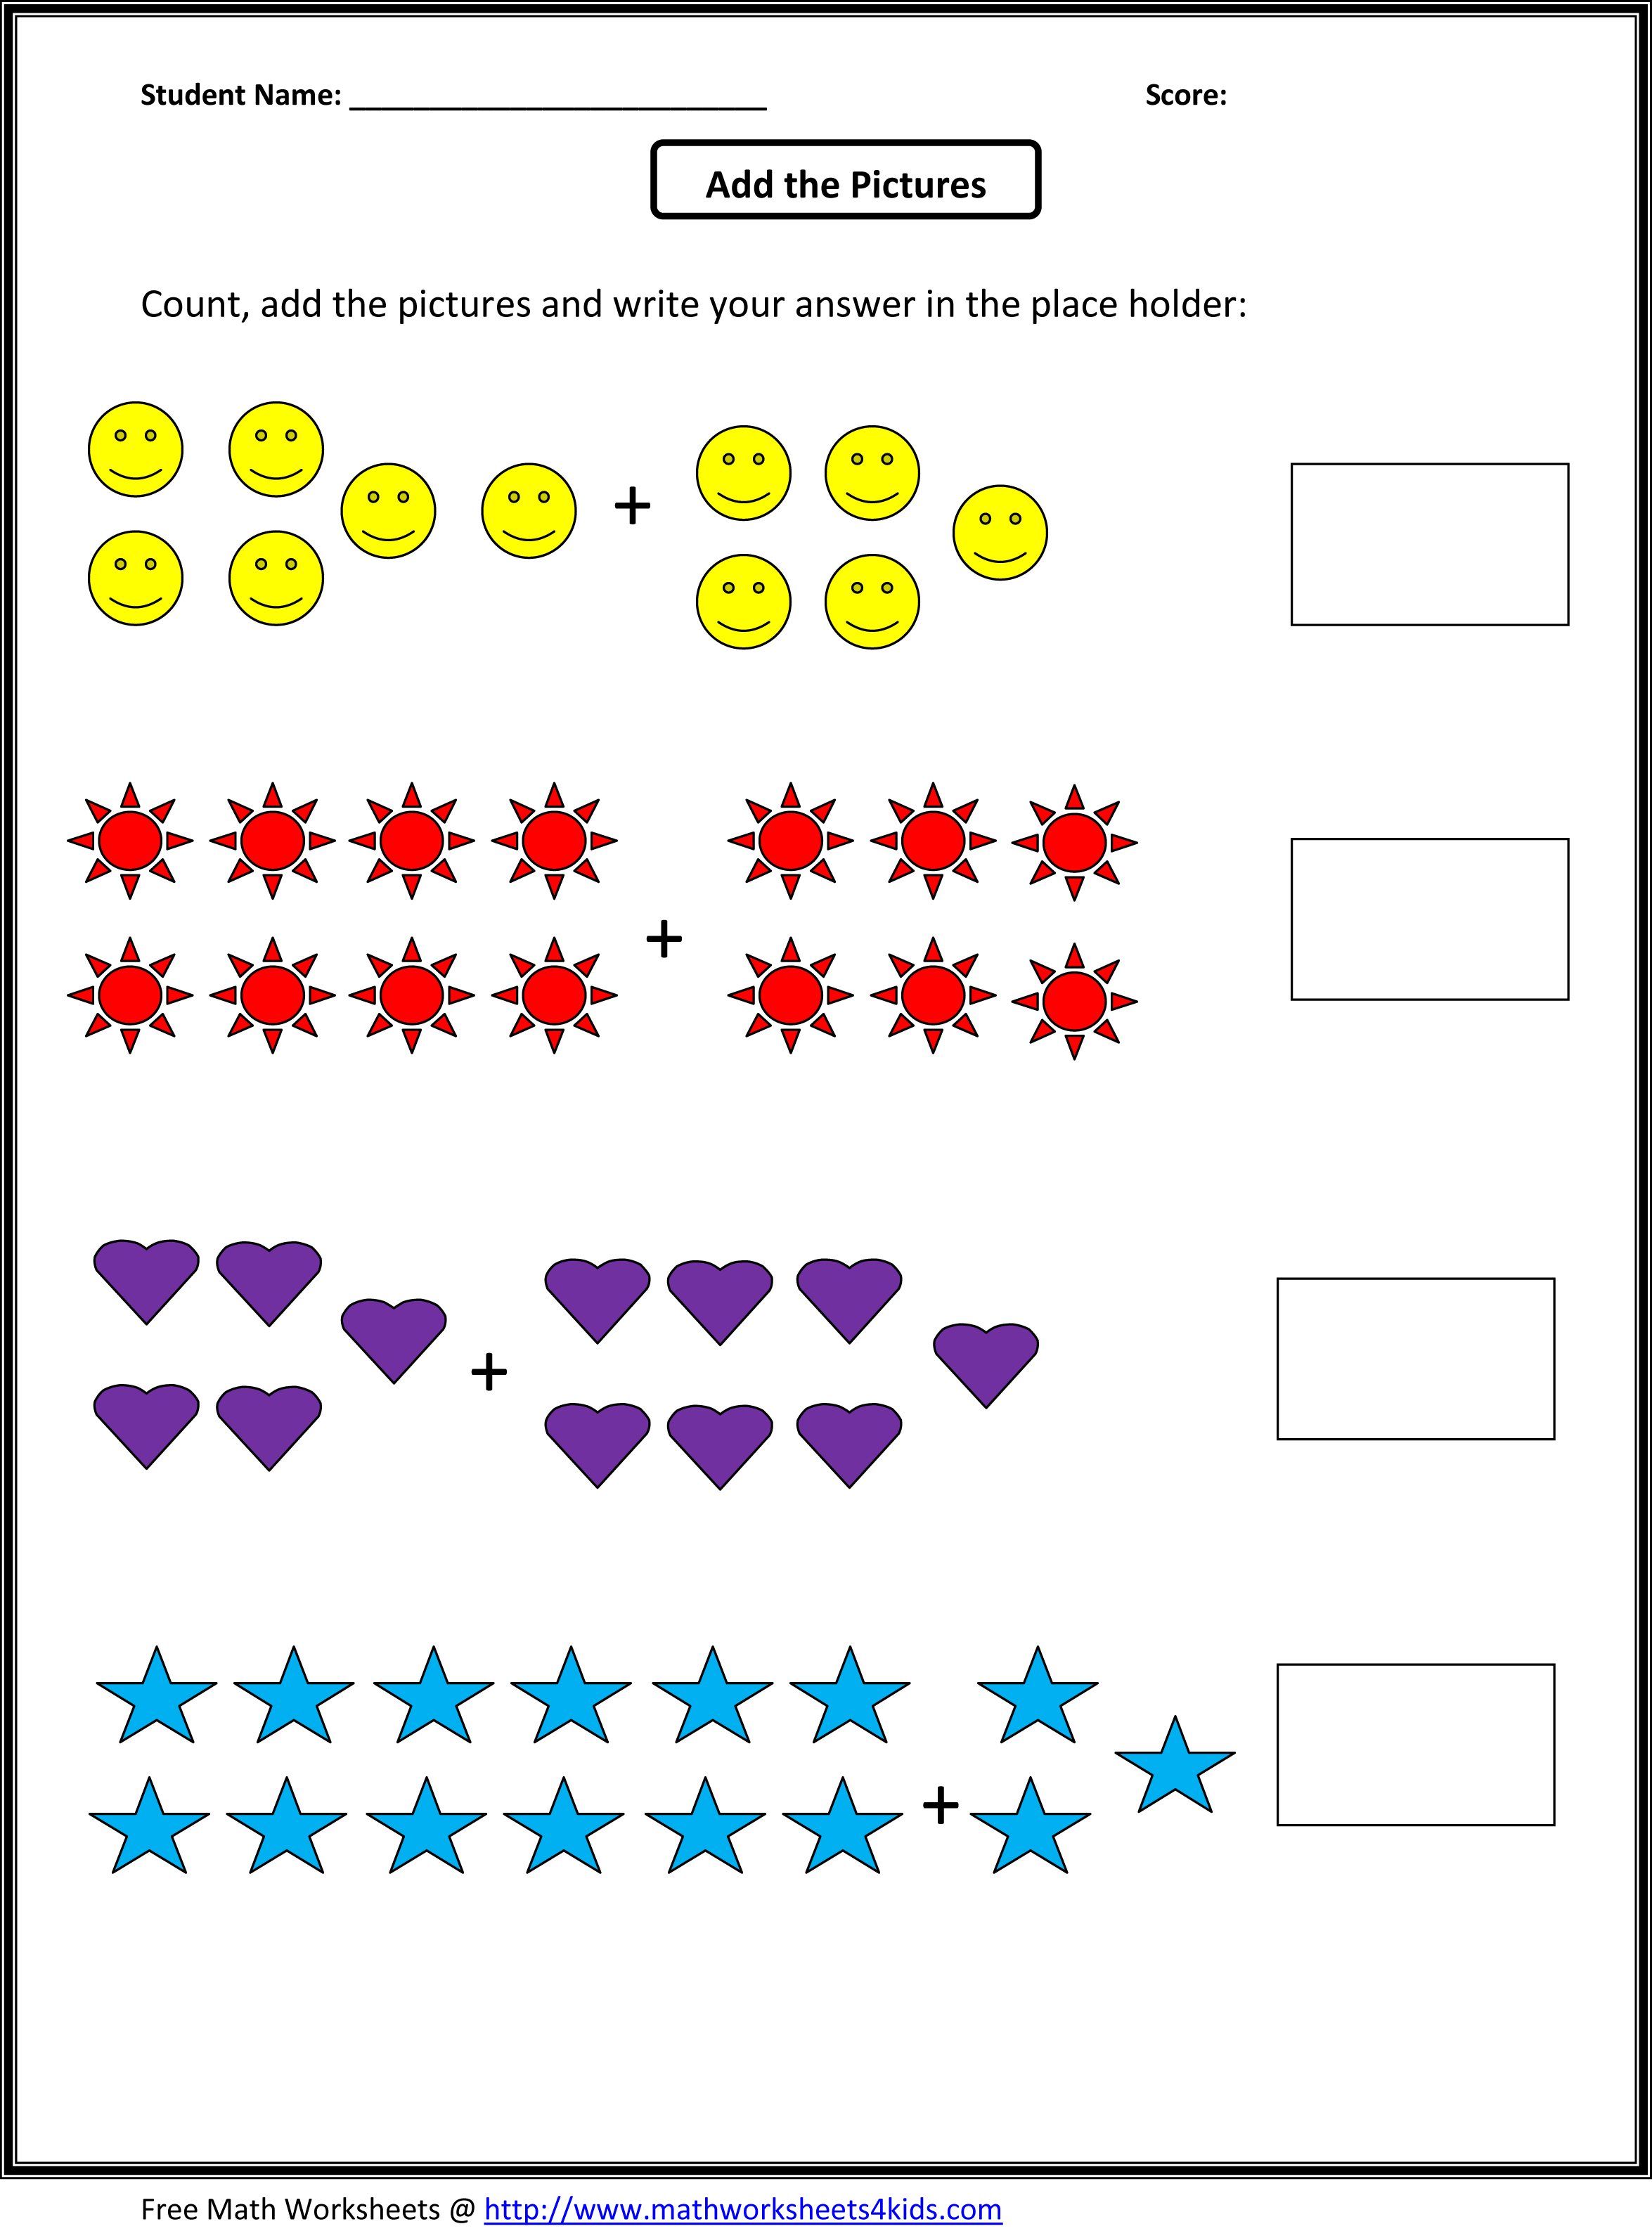 Aldiablosus  Unique Grade  Maths Worksheet  Reocurent With Luxury Math Worksheets For St Grade Free  Reocurent With Breathtaking Counting Maths Worksheets Also Types Of Fractions Worksheet In Addition Worksheets Exponents And Prefixes And Suffixes Worksheets With Answers As Well As Worksheets Counting Money Additionally Math Ratio Word Problems Worksheets From Reocurentcom With Aldiablosus  Luxury Grade  Maths Worksheet  Reocurent With Breathtaking Math Worksheets For St Grade Free  Reocurent And Unique Counting Maths Worksheets Also Types Of Fractions Worksheet In Addition Worksheets Exponents From Reocurentcom